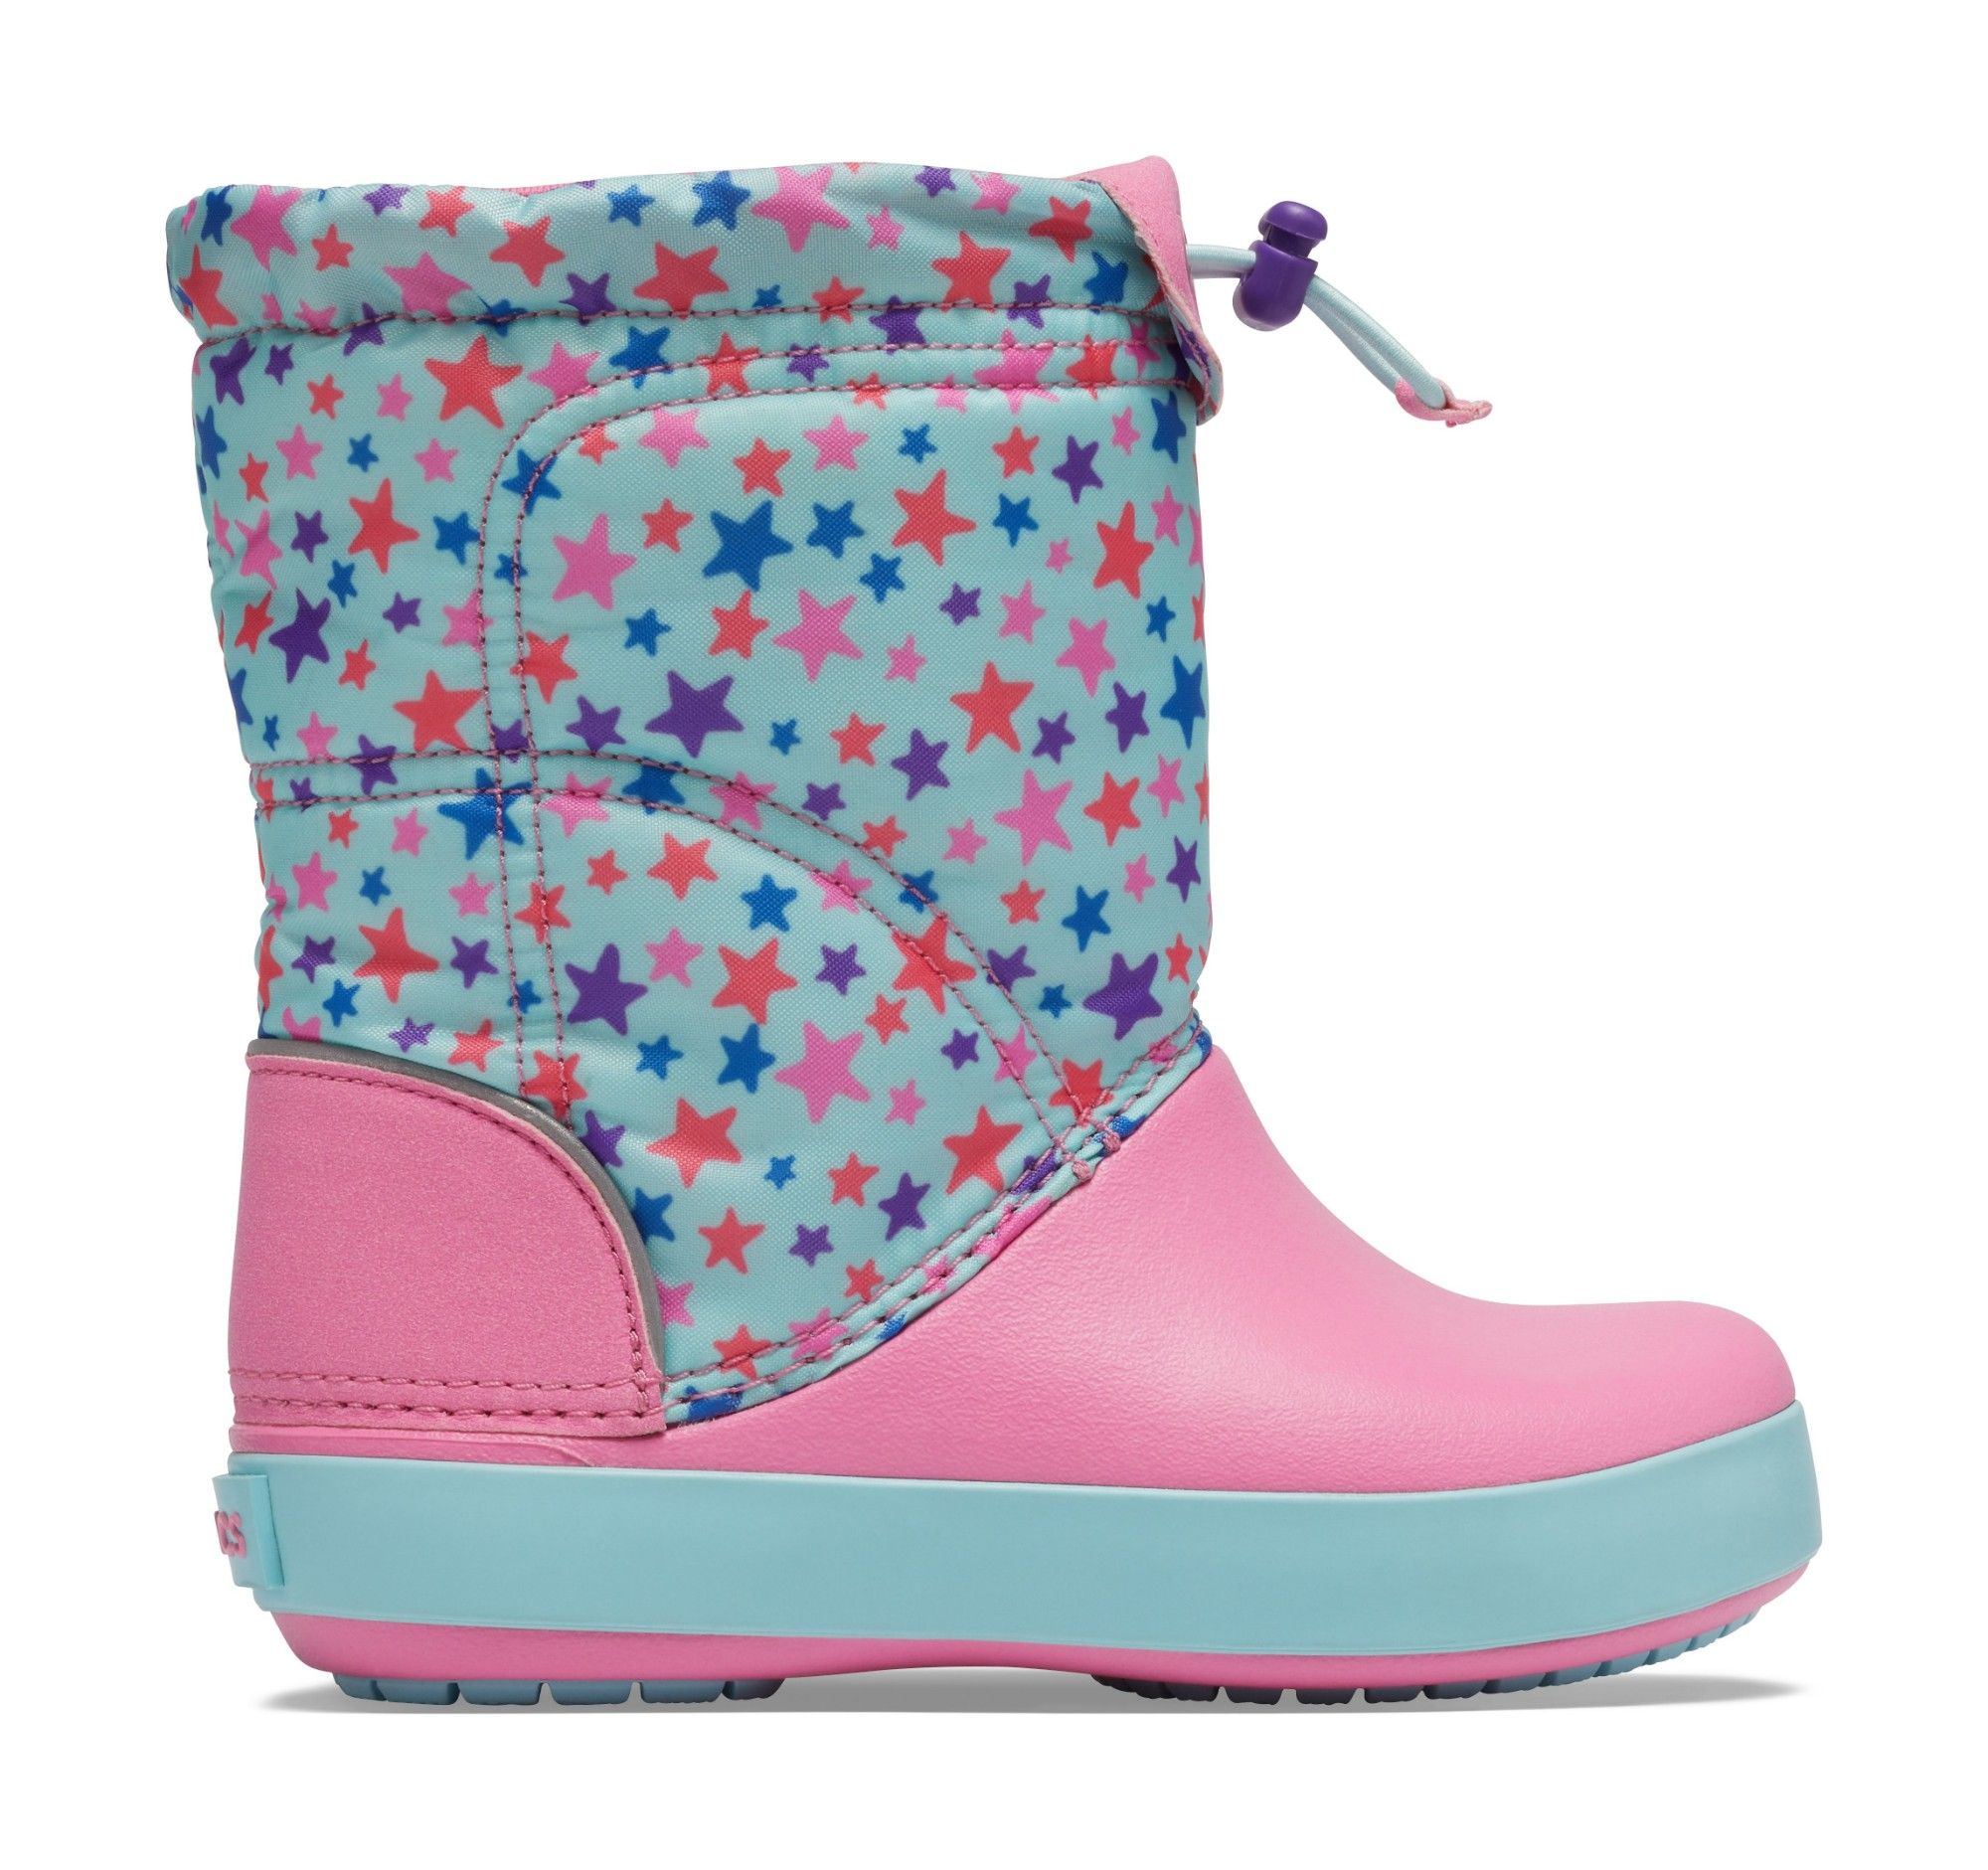 Crocs™ Crocband LodgePoint Graphic Winter Boot K Ice Blue/Pink Lemonade 29